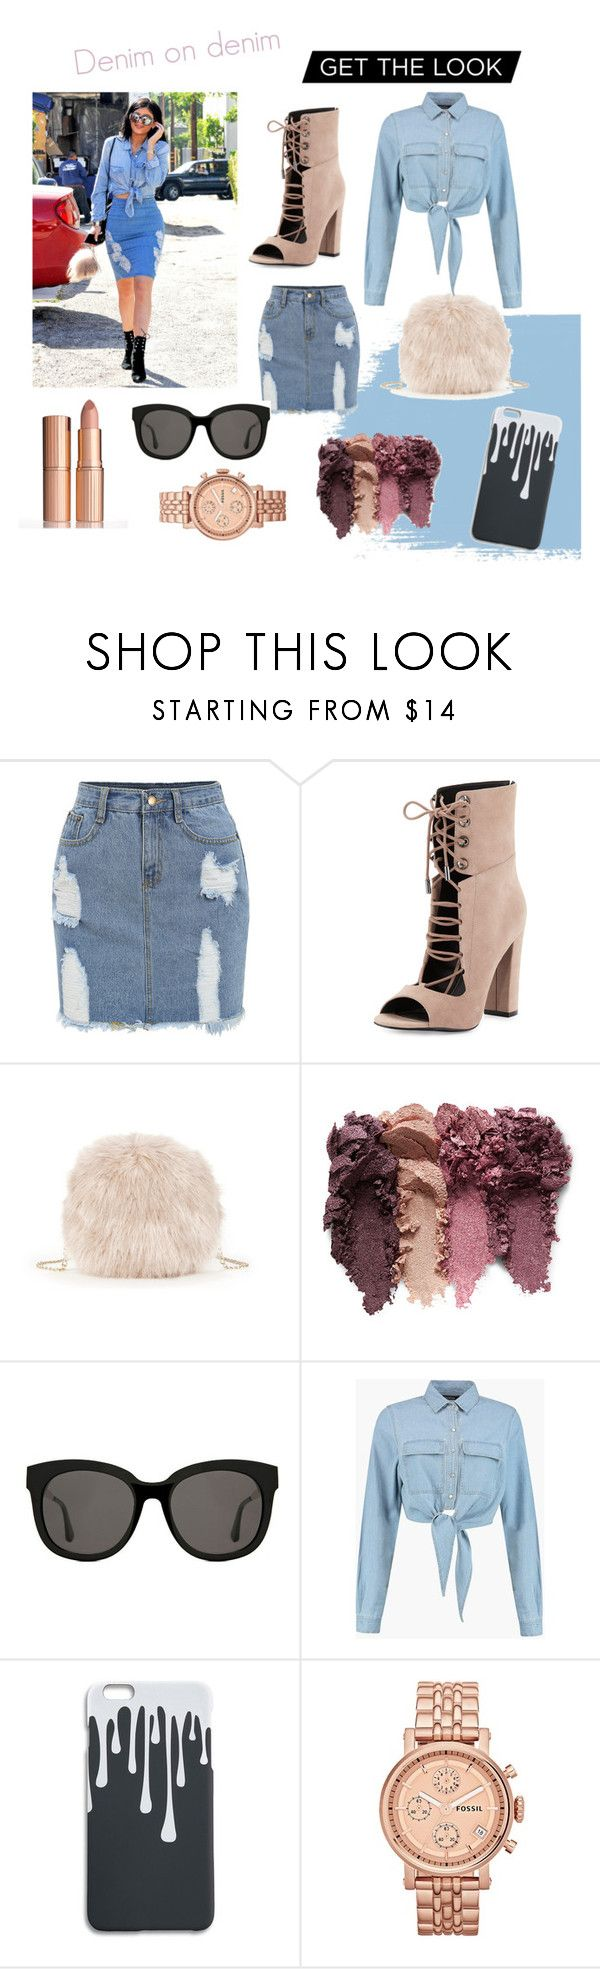 """Kylie"" by juliesvankjaer on Polyvore featuring Kendall + Kylie, Sole Society, Gentle Monster, Boohoo and FOSSIL"